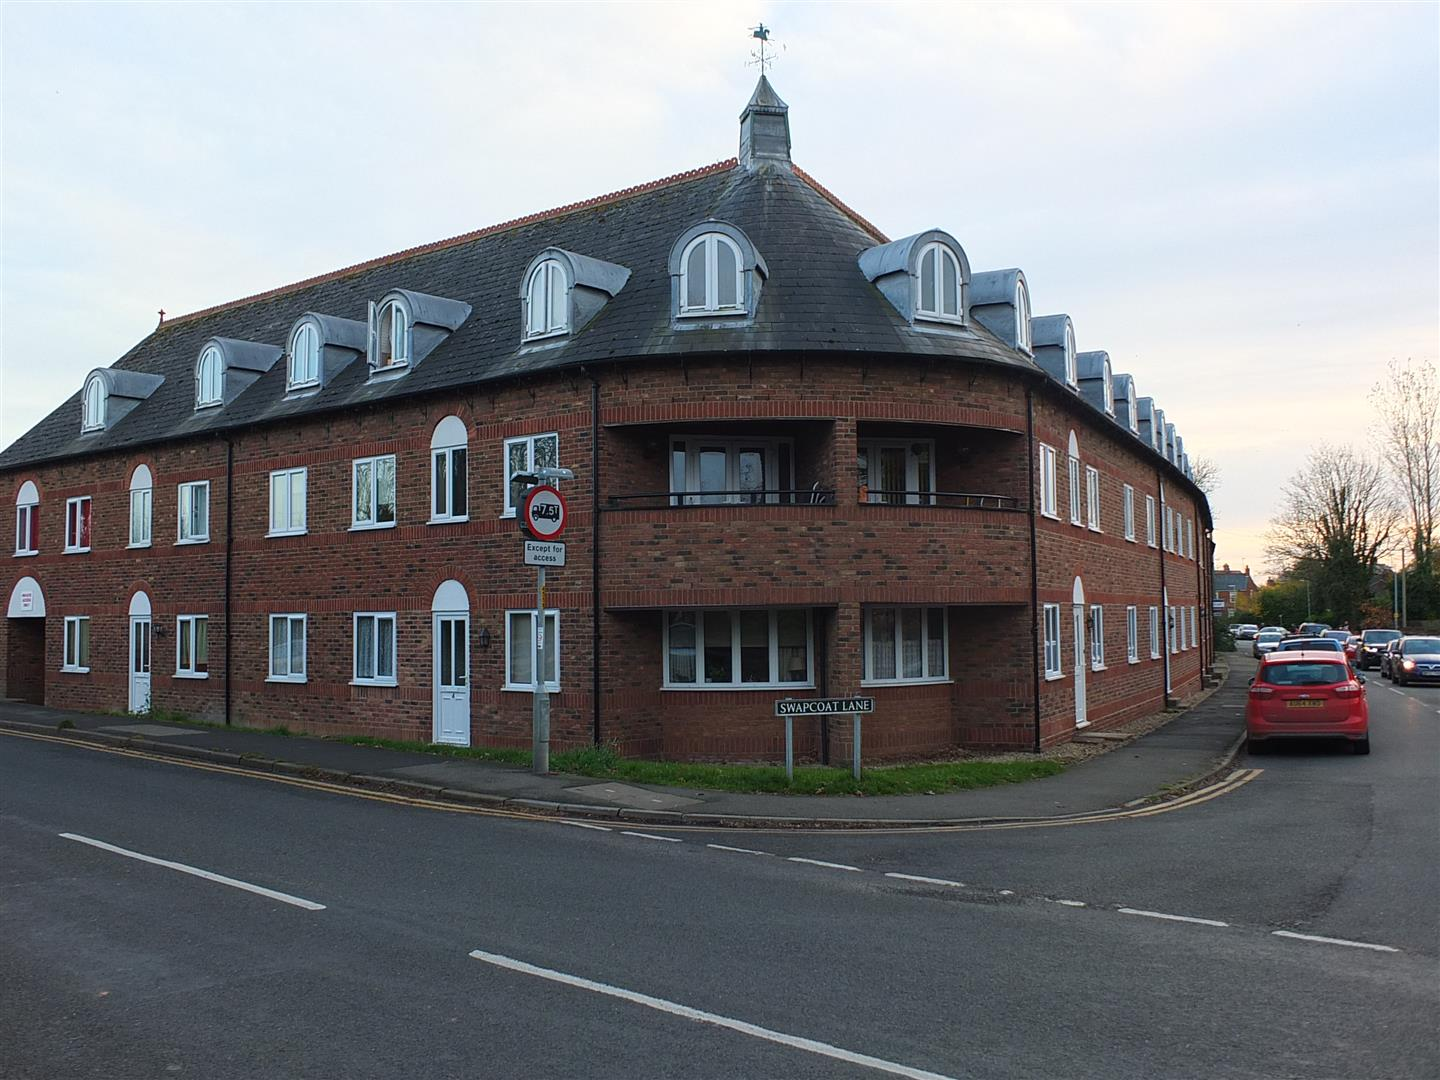 2 bed flat to rent in Long Sutton Spalding, PE12 9RL - Property Image 1